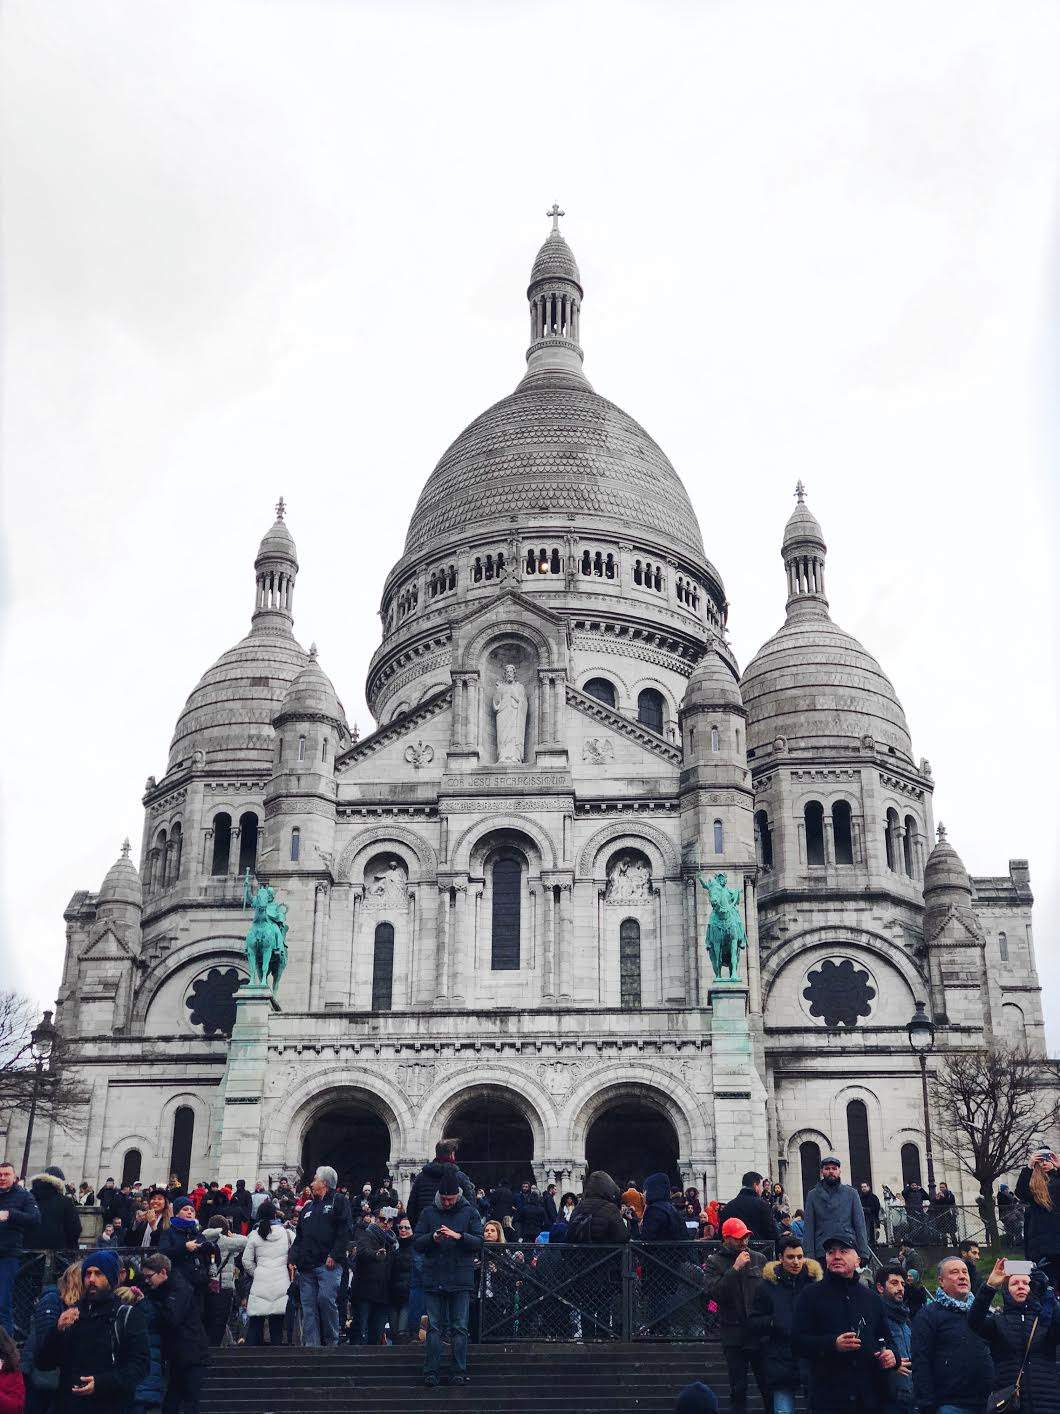 Muslim-travel-guide-Paris-Sacre-Coeur-basilica.jpg